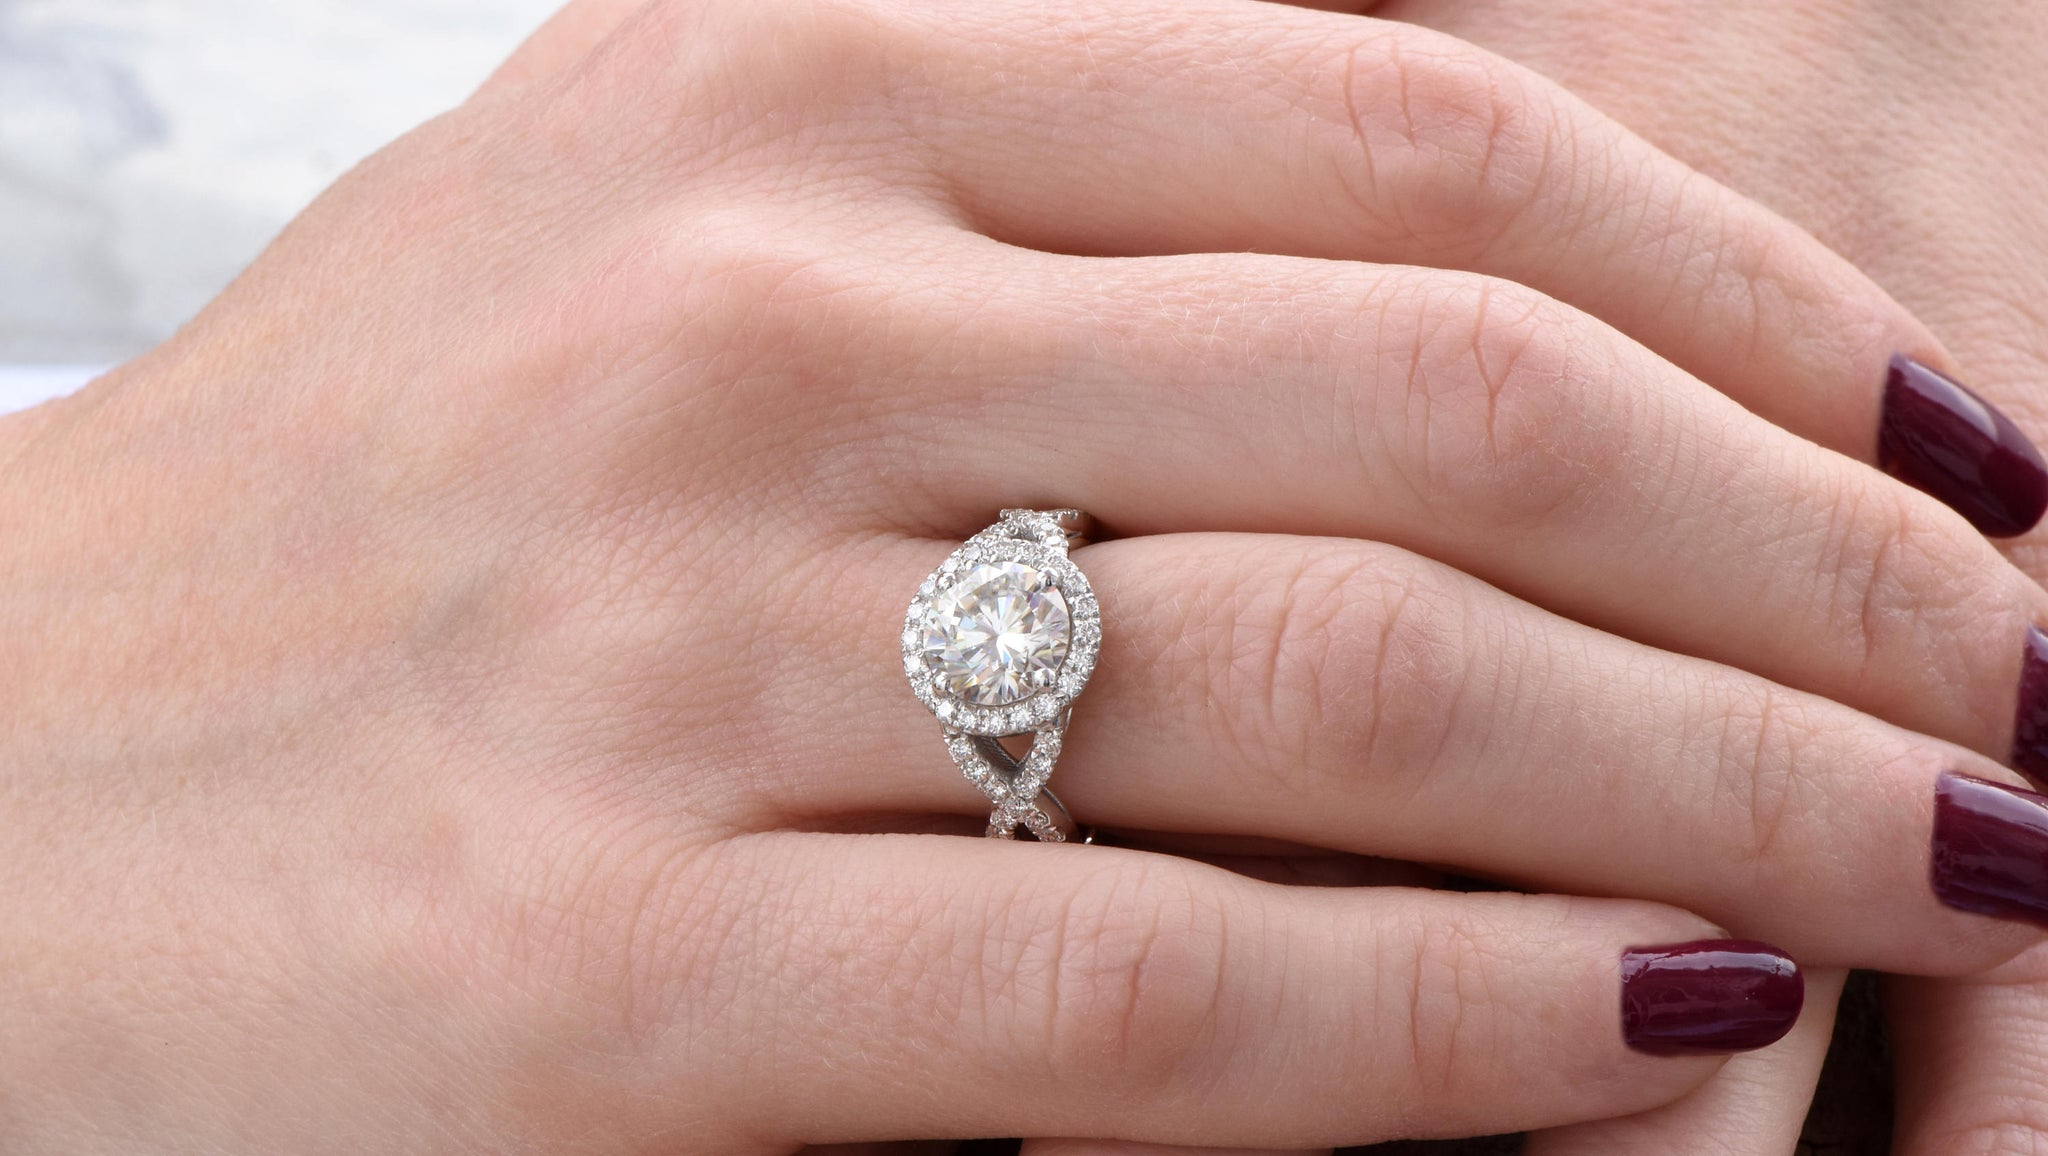 Celtic knot ring-Celtic engagement ring-2 carat Moissanite halo Engagement Ring-Promise ring